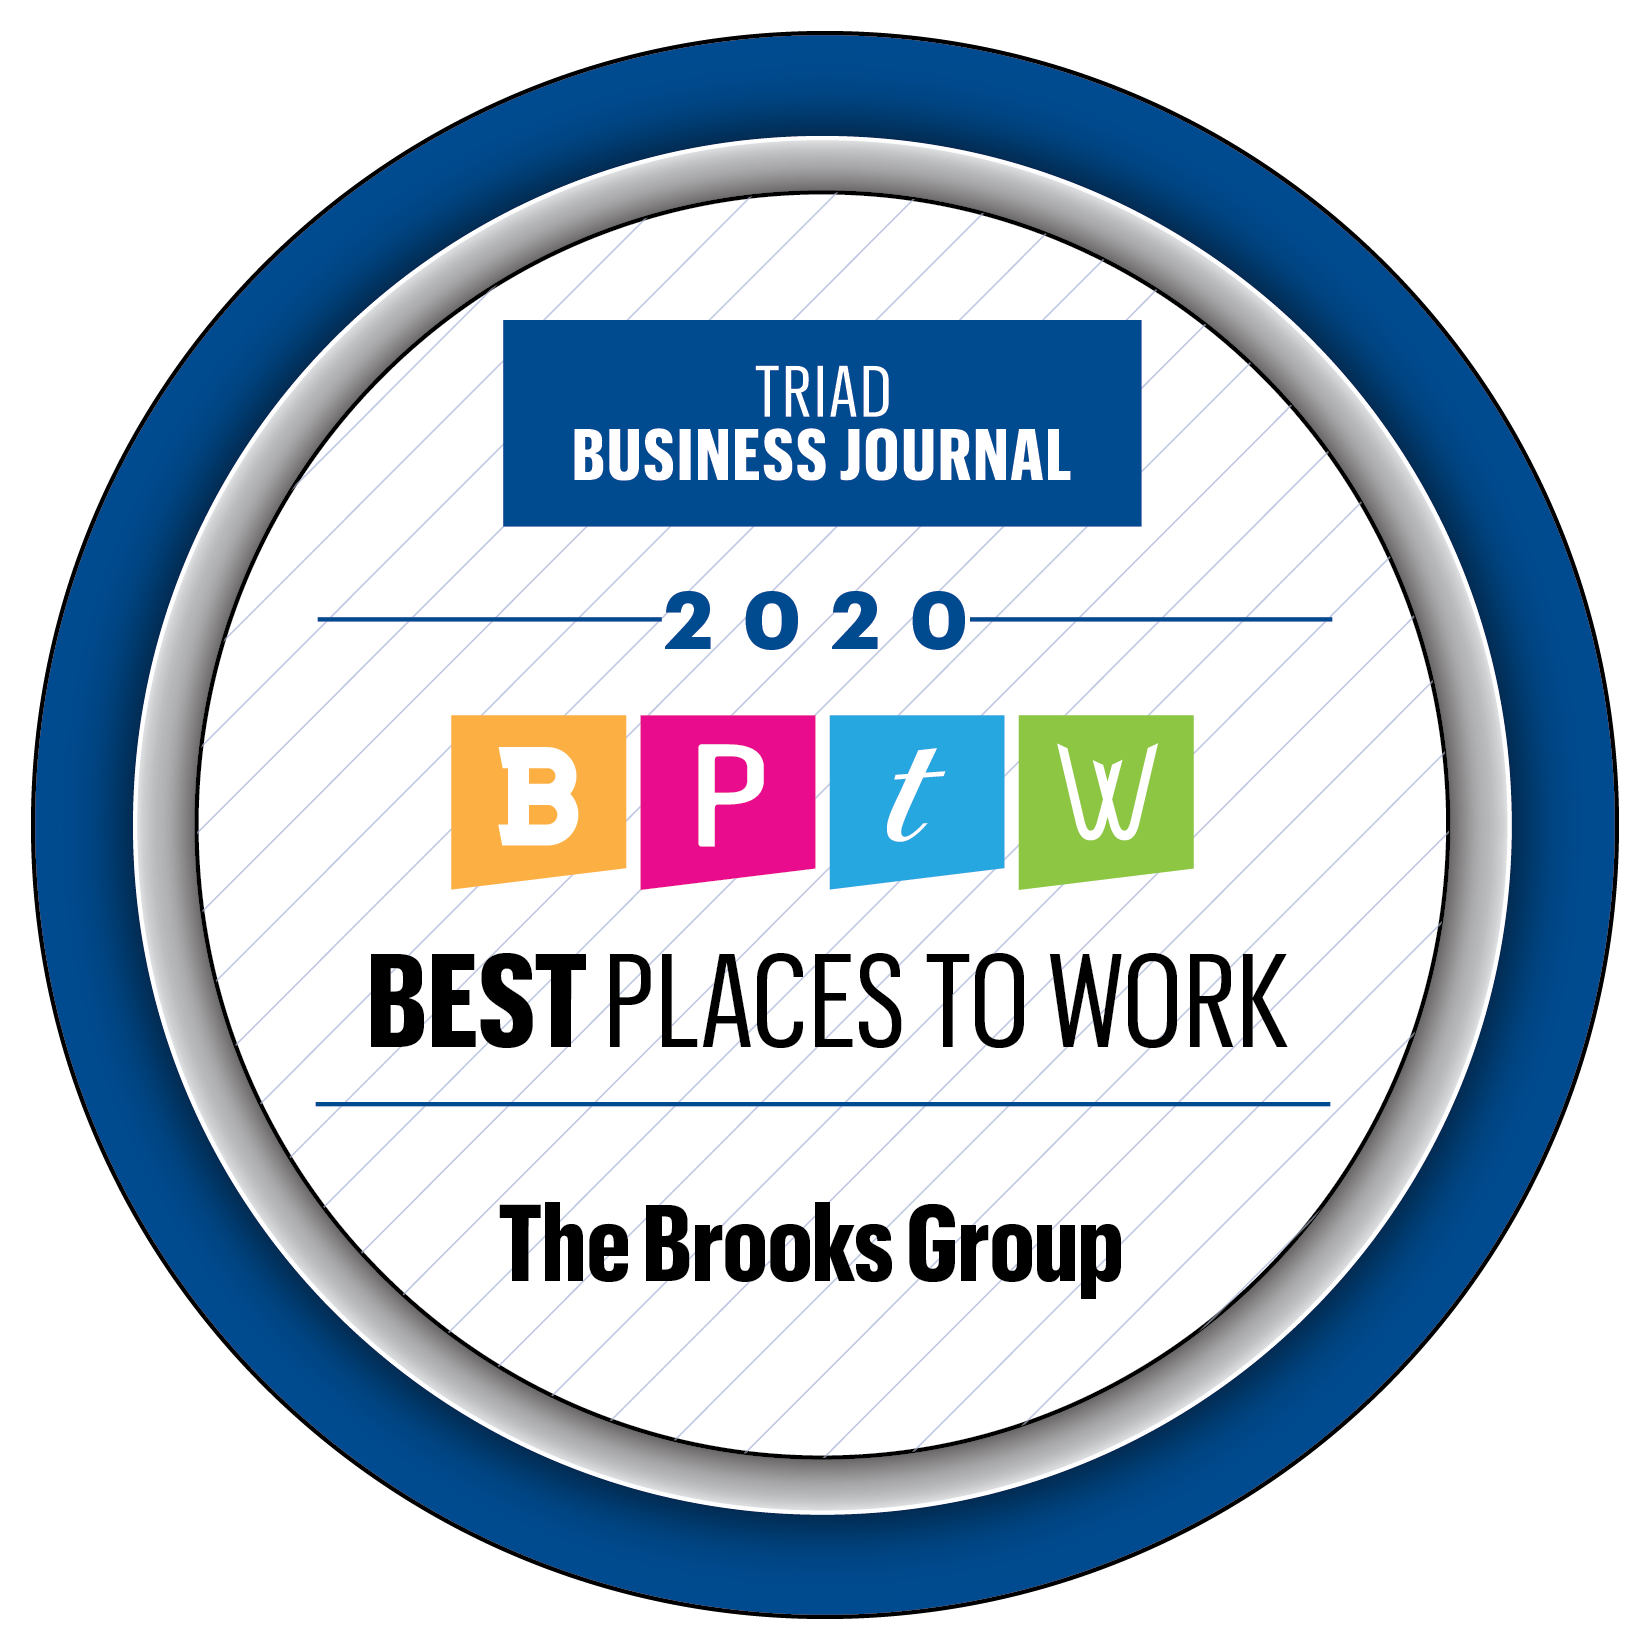 Triad Business Journal Best Places to Work